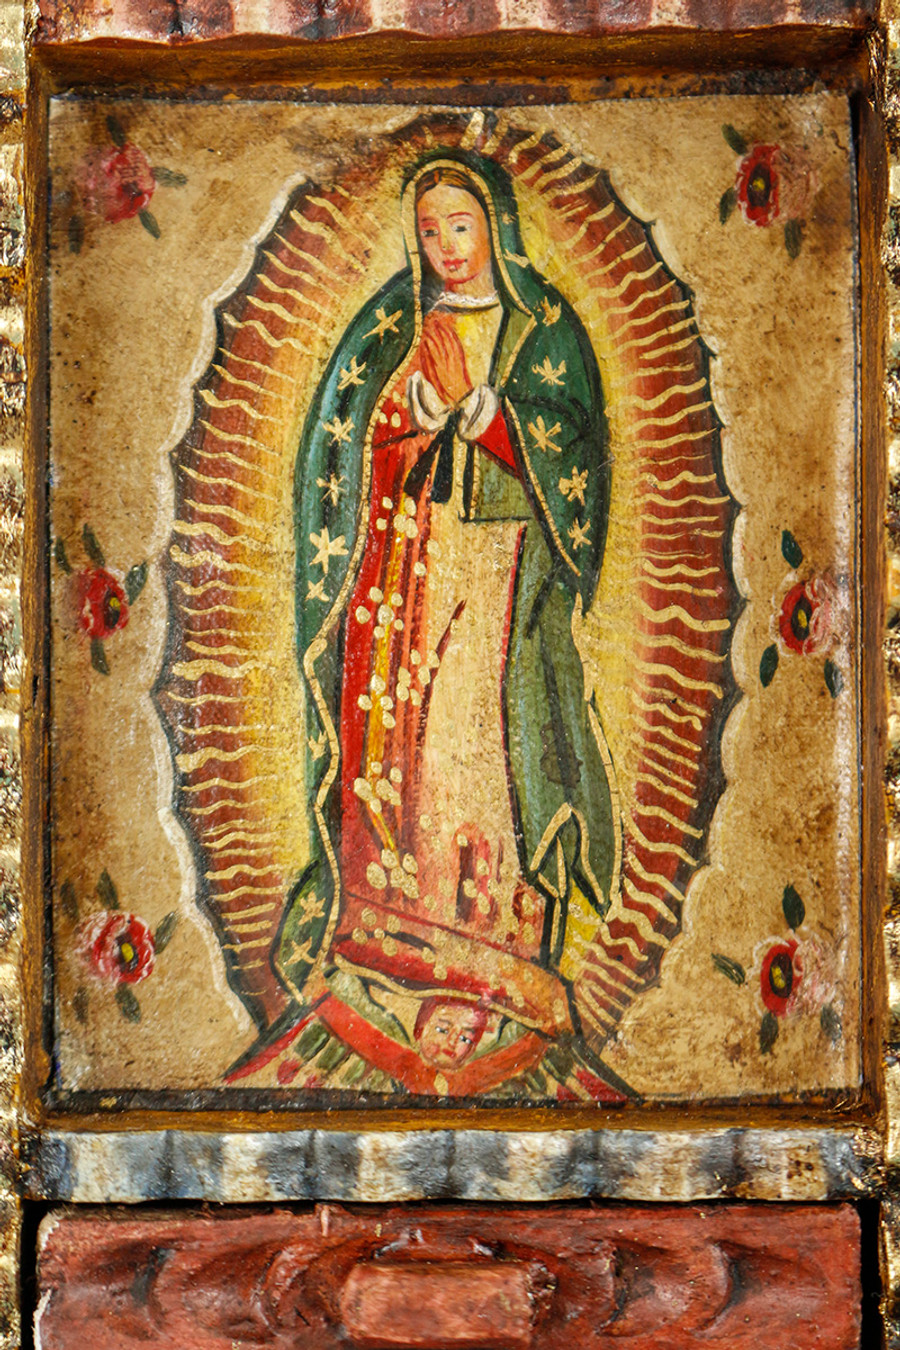 Guadalupe Virgin Colonial Peru Art Handmade Retablo Handcarved Altarpiece (71-100-04427)